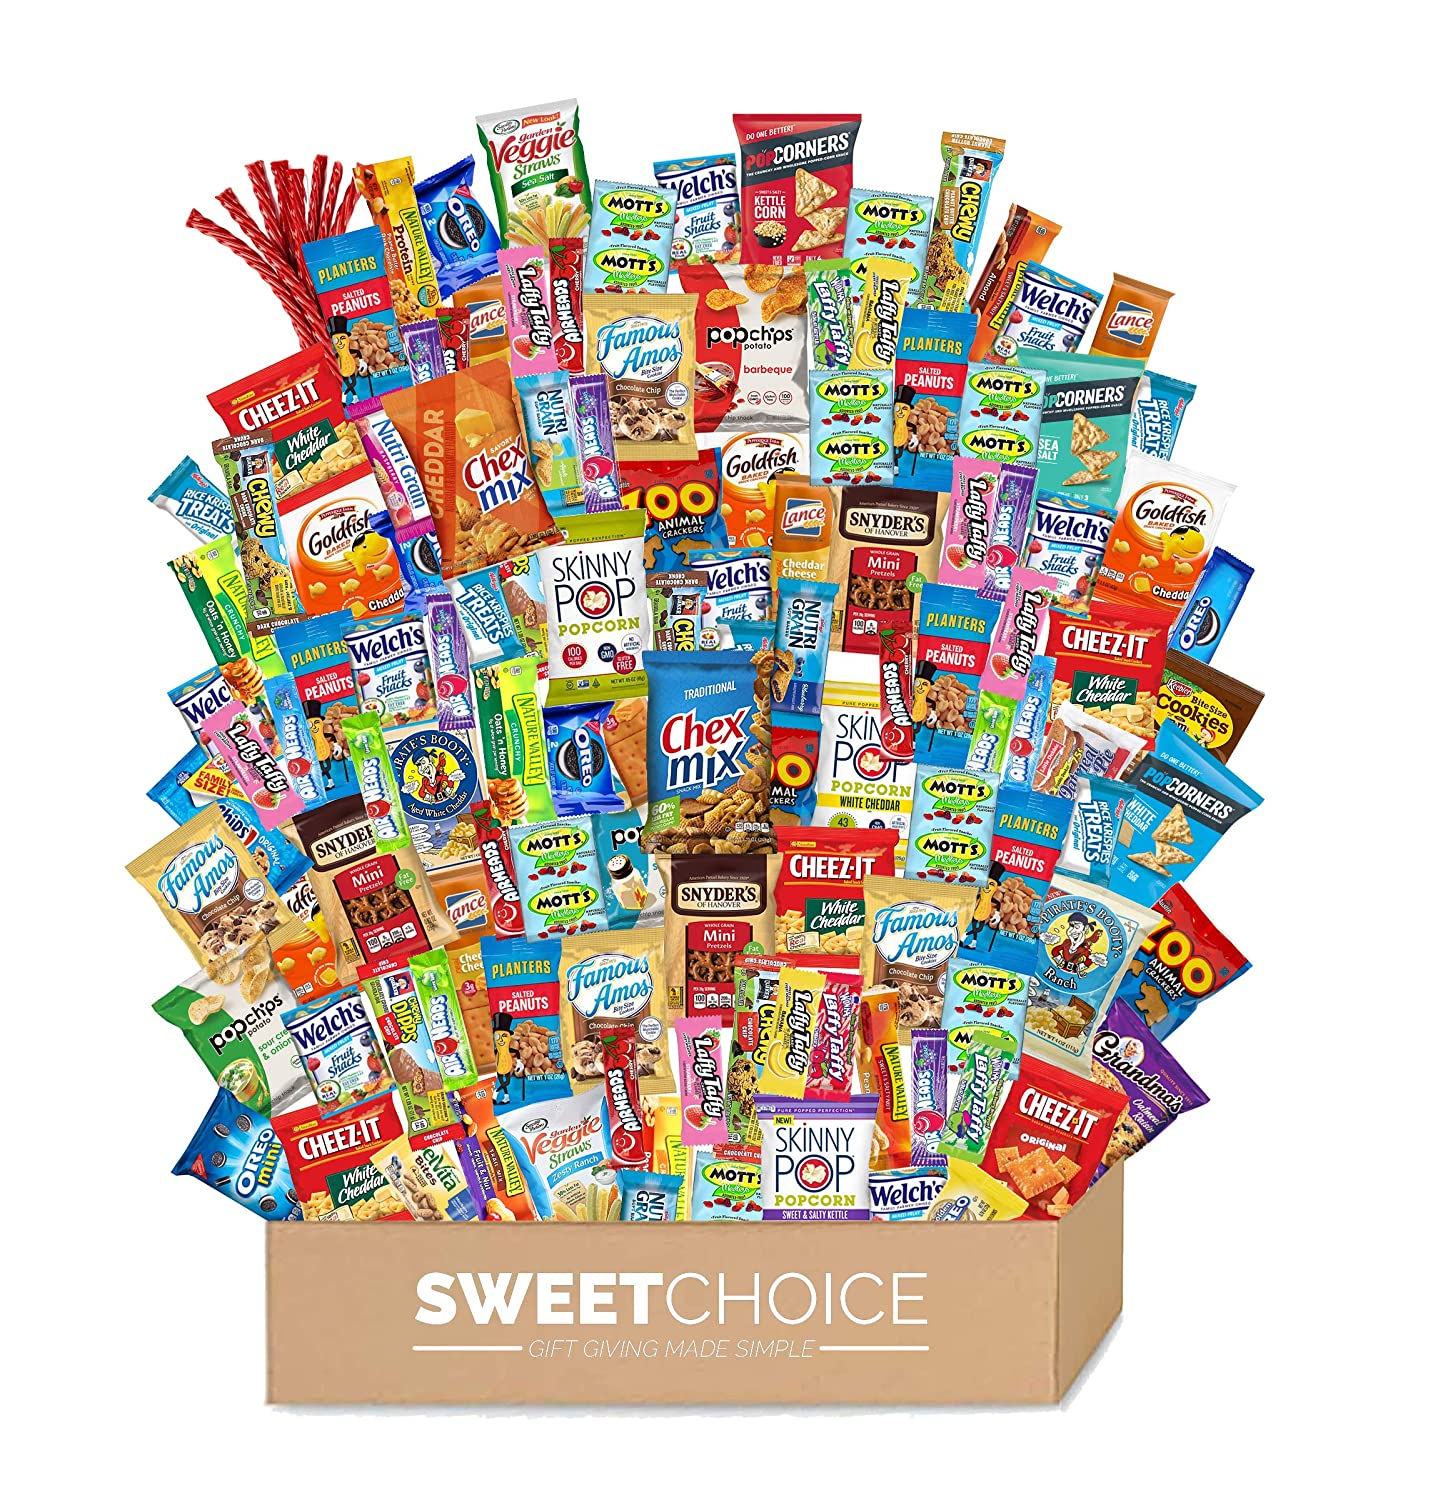 Care Package (120 Count) Variety Snacks Gift Box - College Students, Military, Work or Home - Chips Cookies & Candy! Sweet Choice